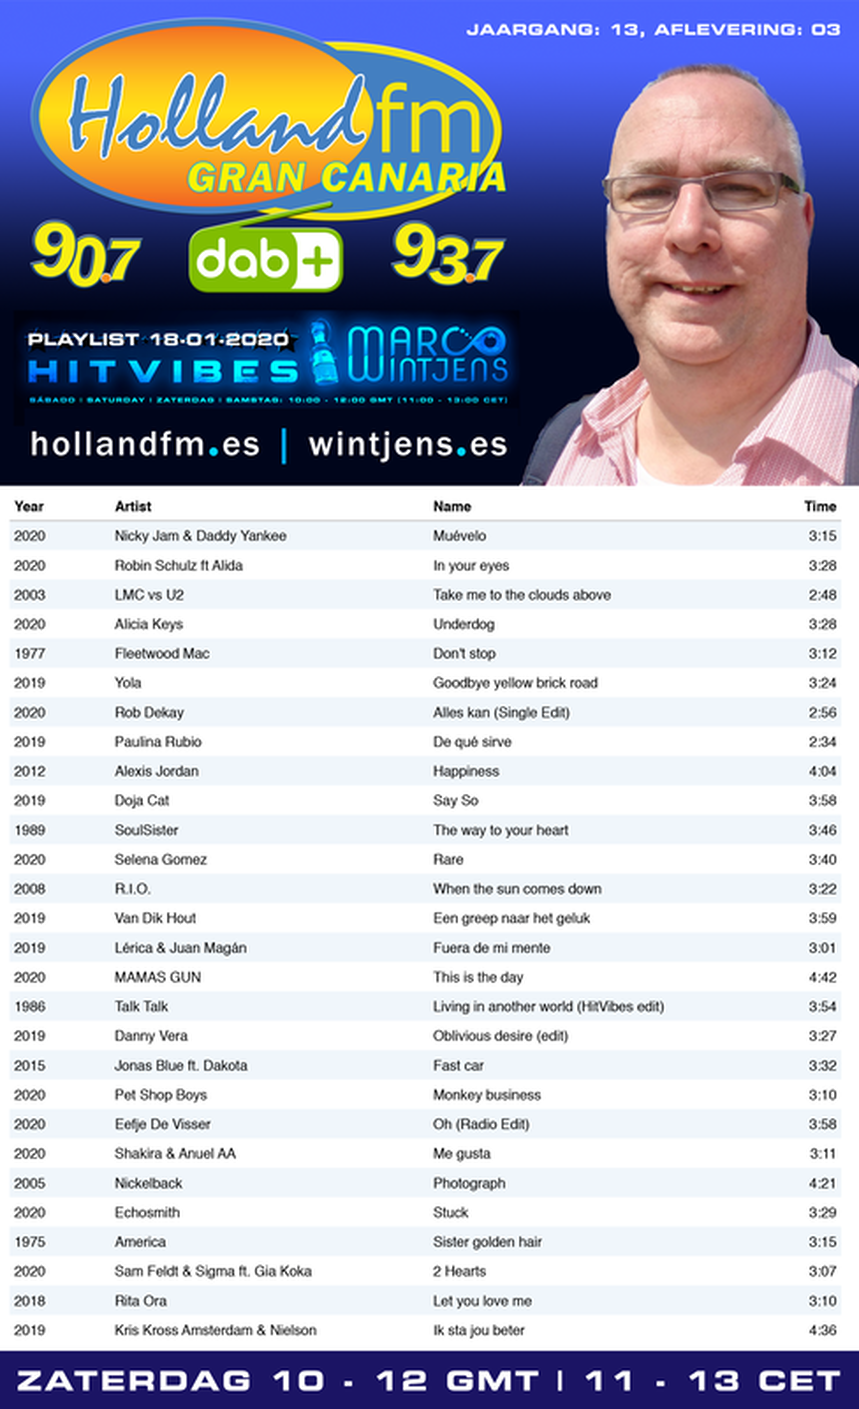 Playlist HitVibes, Gran Canaria, Marco Wintjens, Holland FM, 18-01-2020